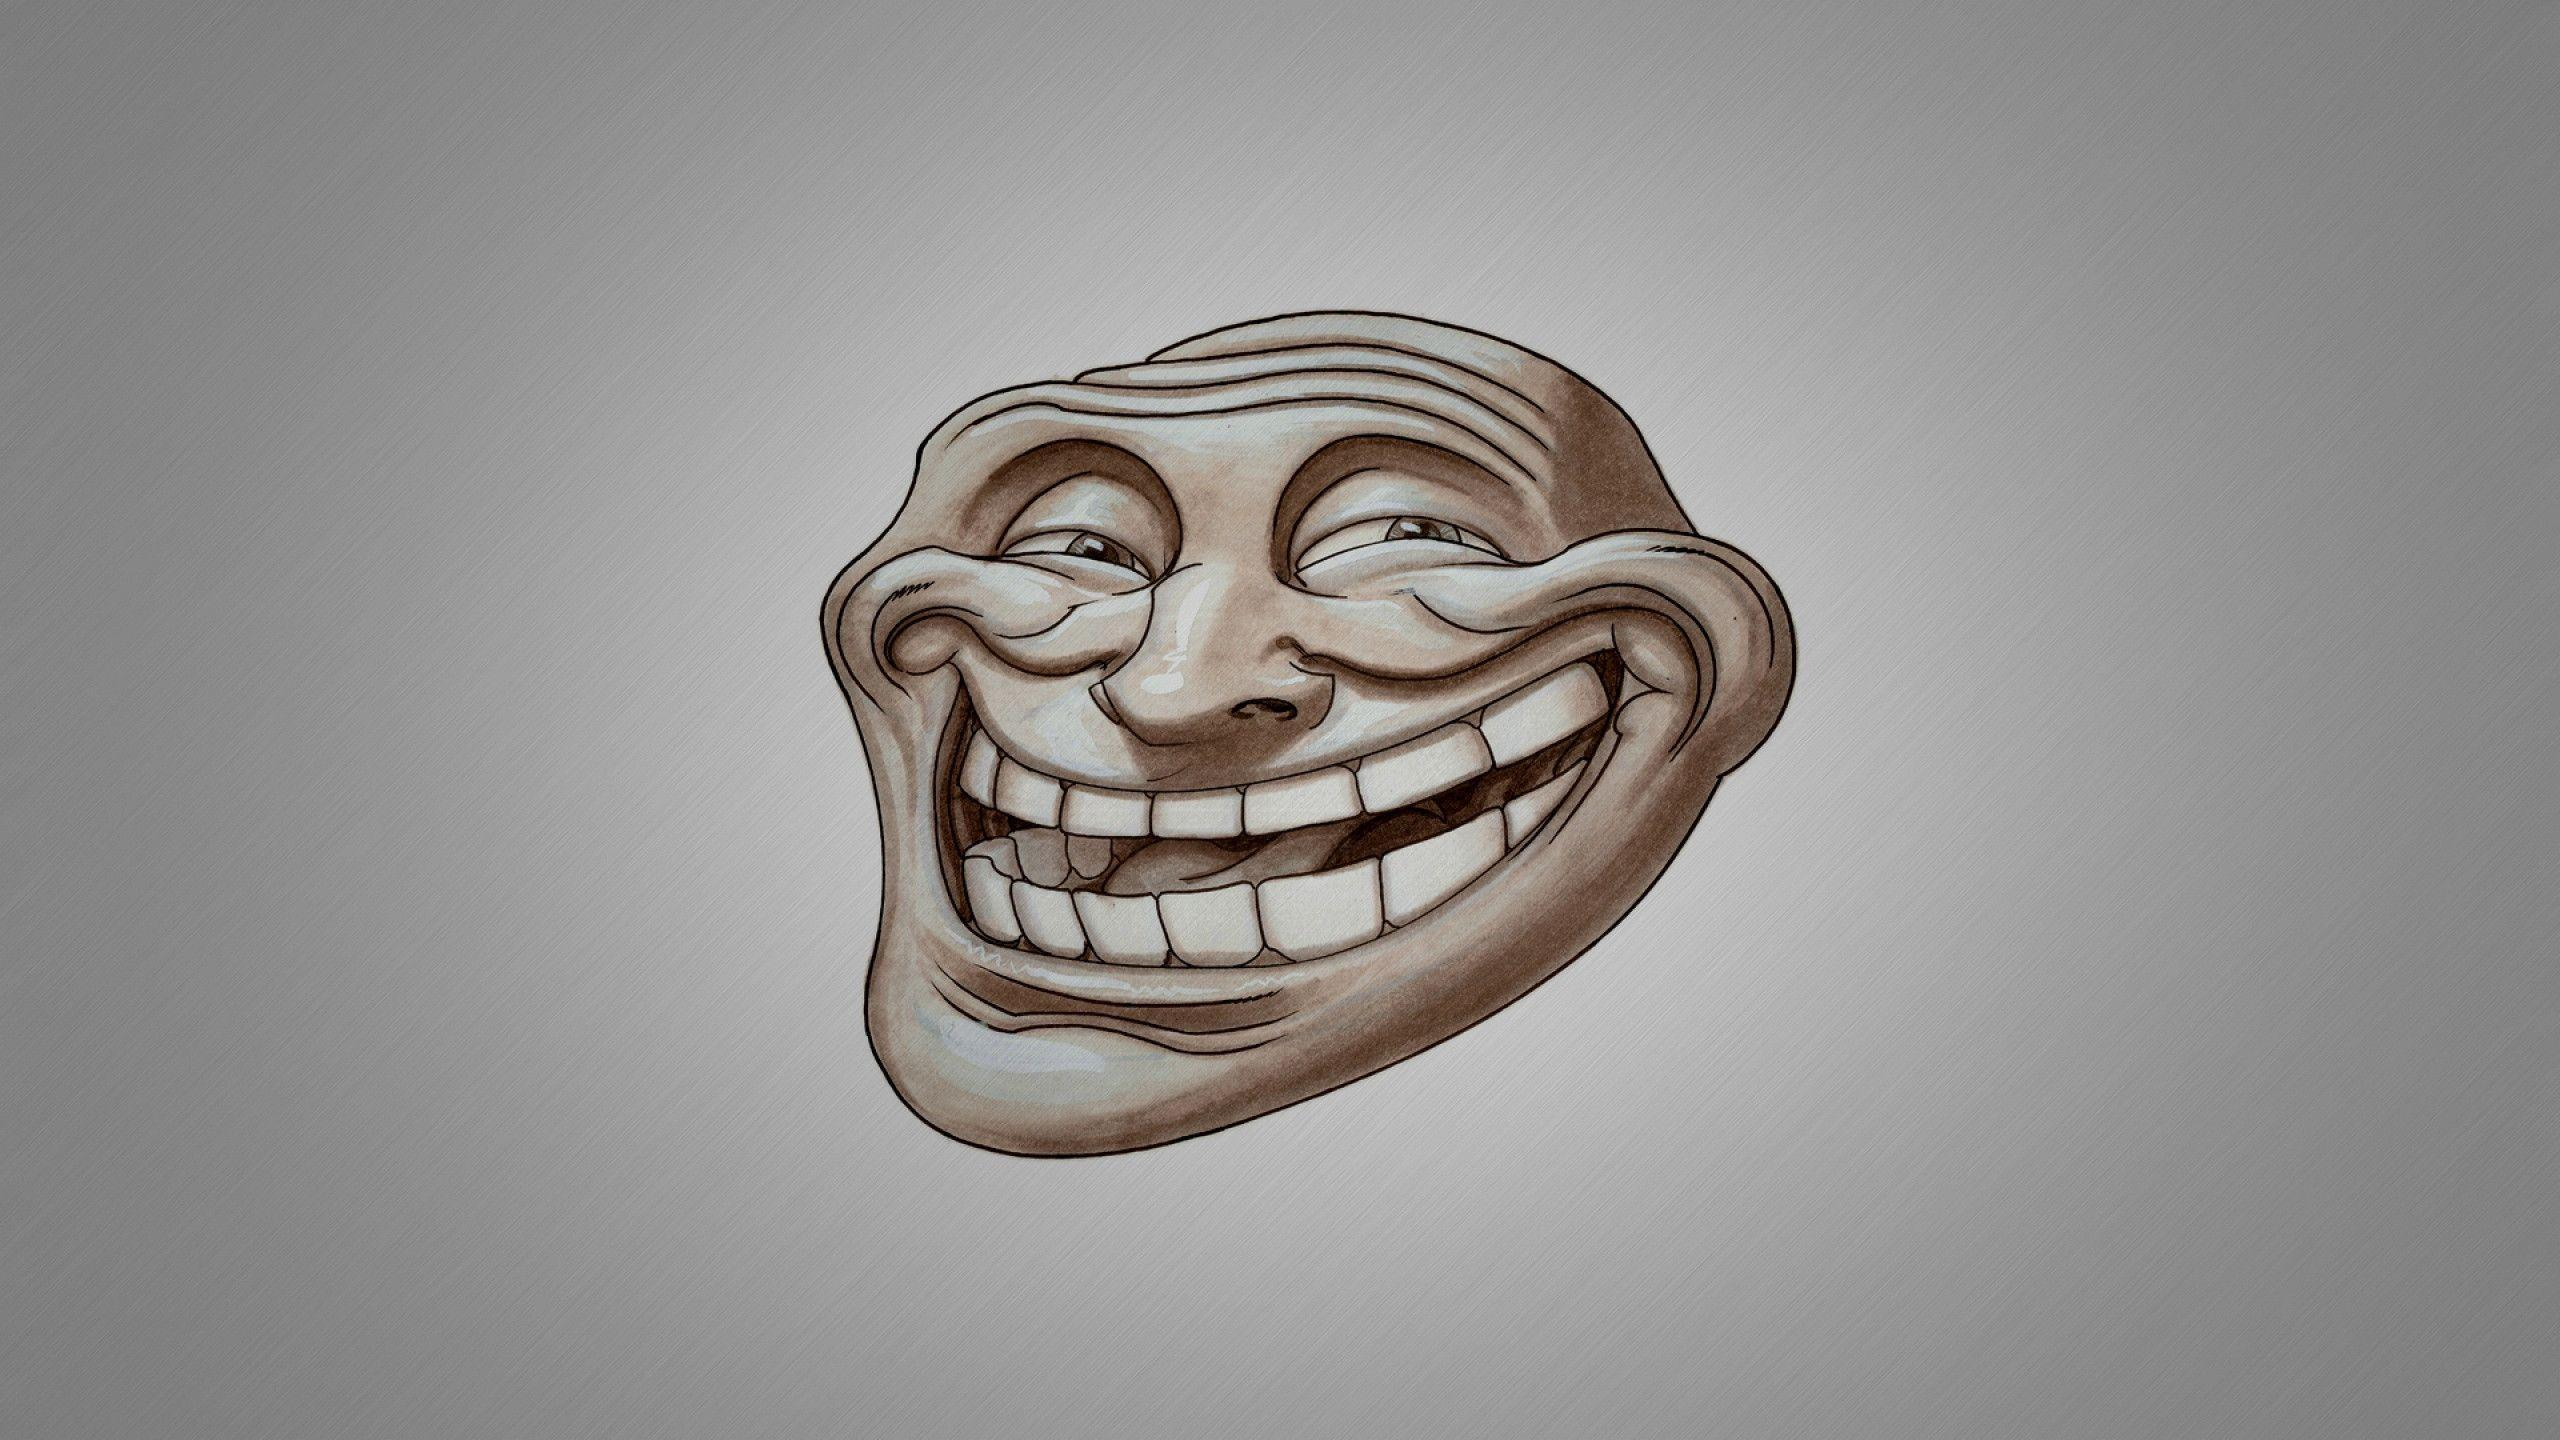 Troll face wallpapers wallpaper cave download wallpaper 2560x1440 troll face smile mac imac 27 hd voltagebd Gallery